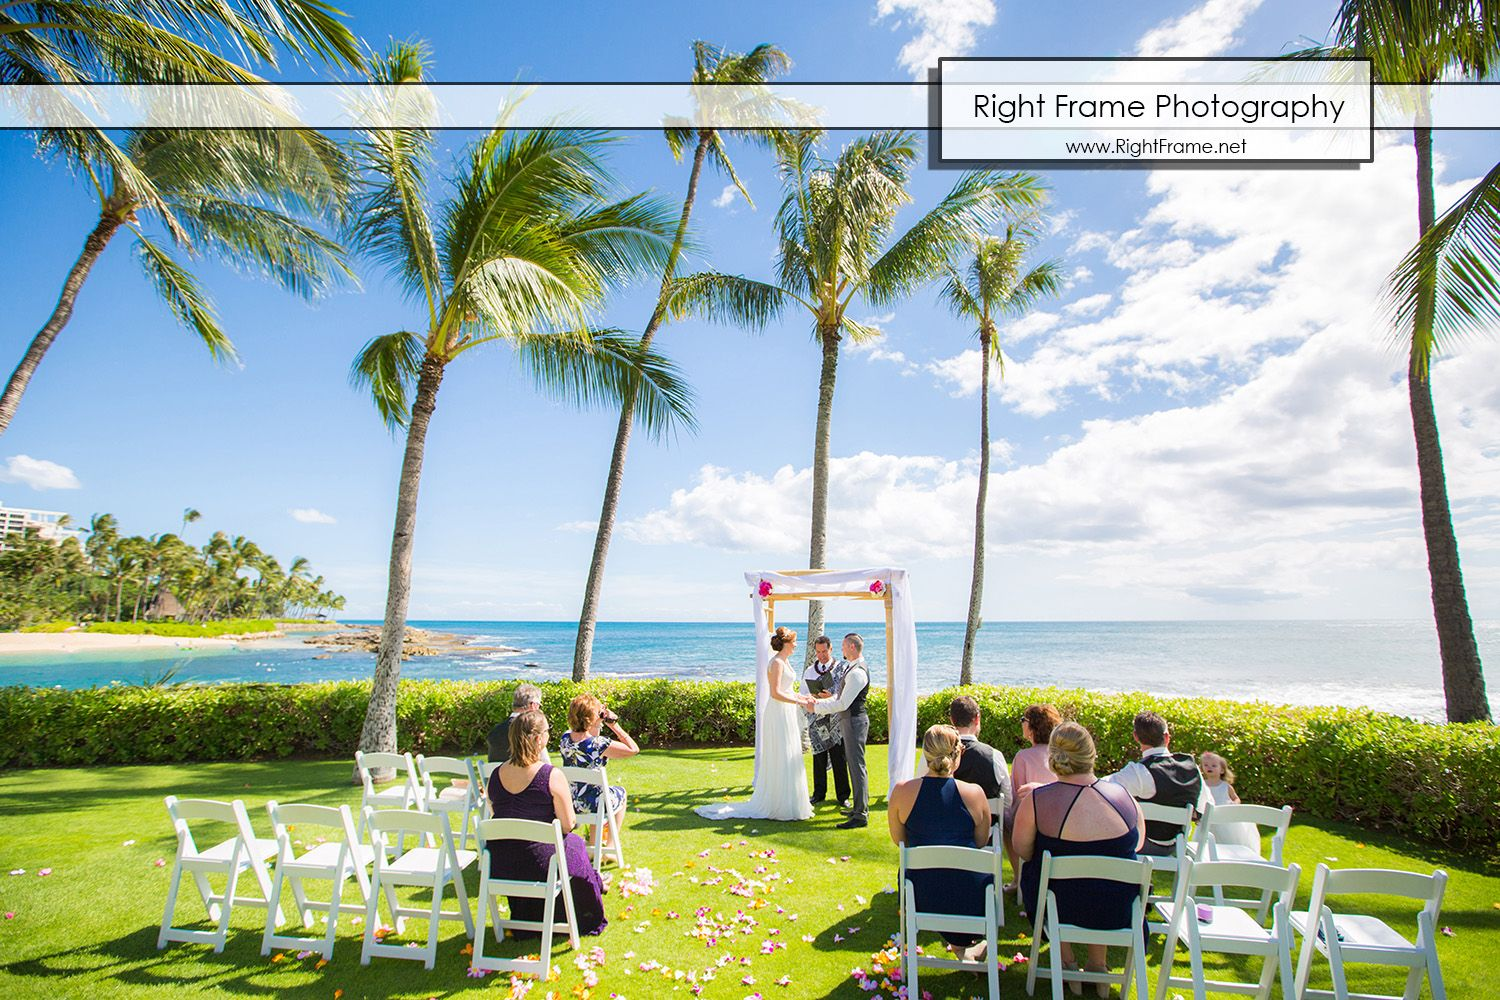 Hawaii Weddings At Paradise Cove The Point Ko Olina Oahu Pictures Picture Photo Photos Photographer Photography Idea Ideas Bride Destination